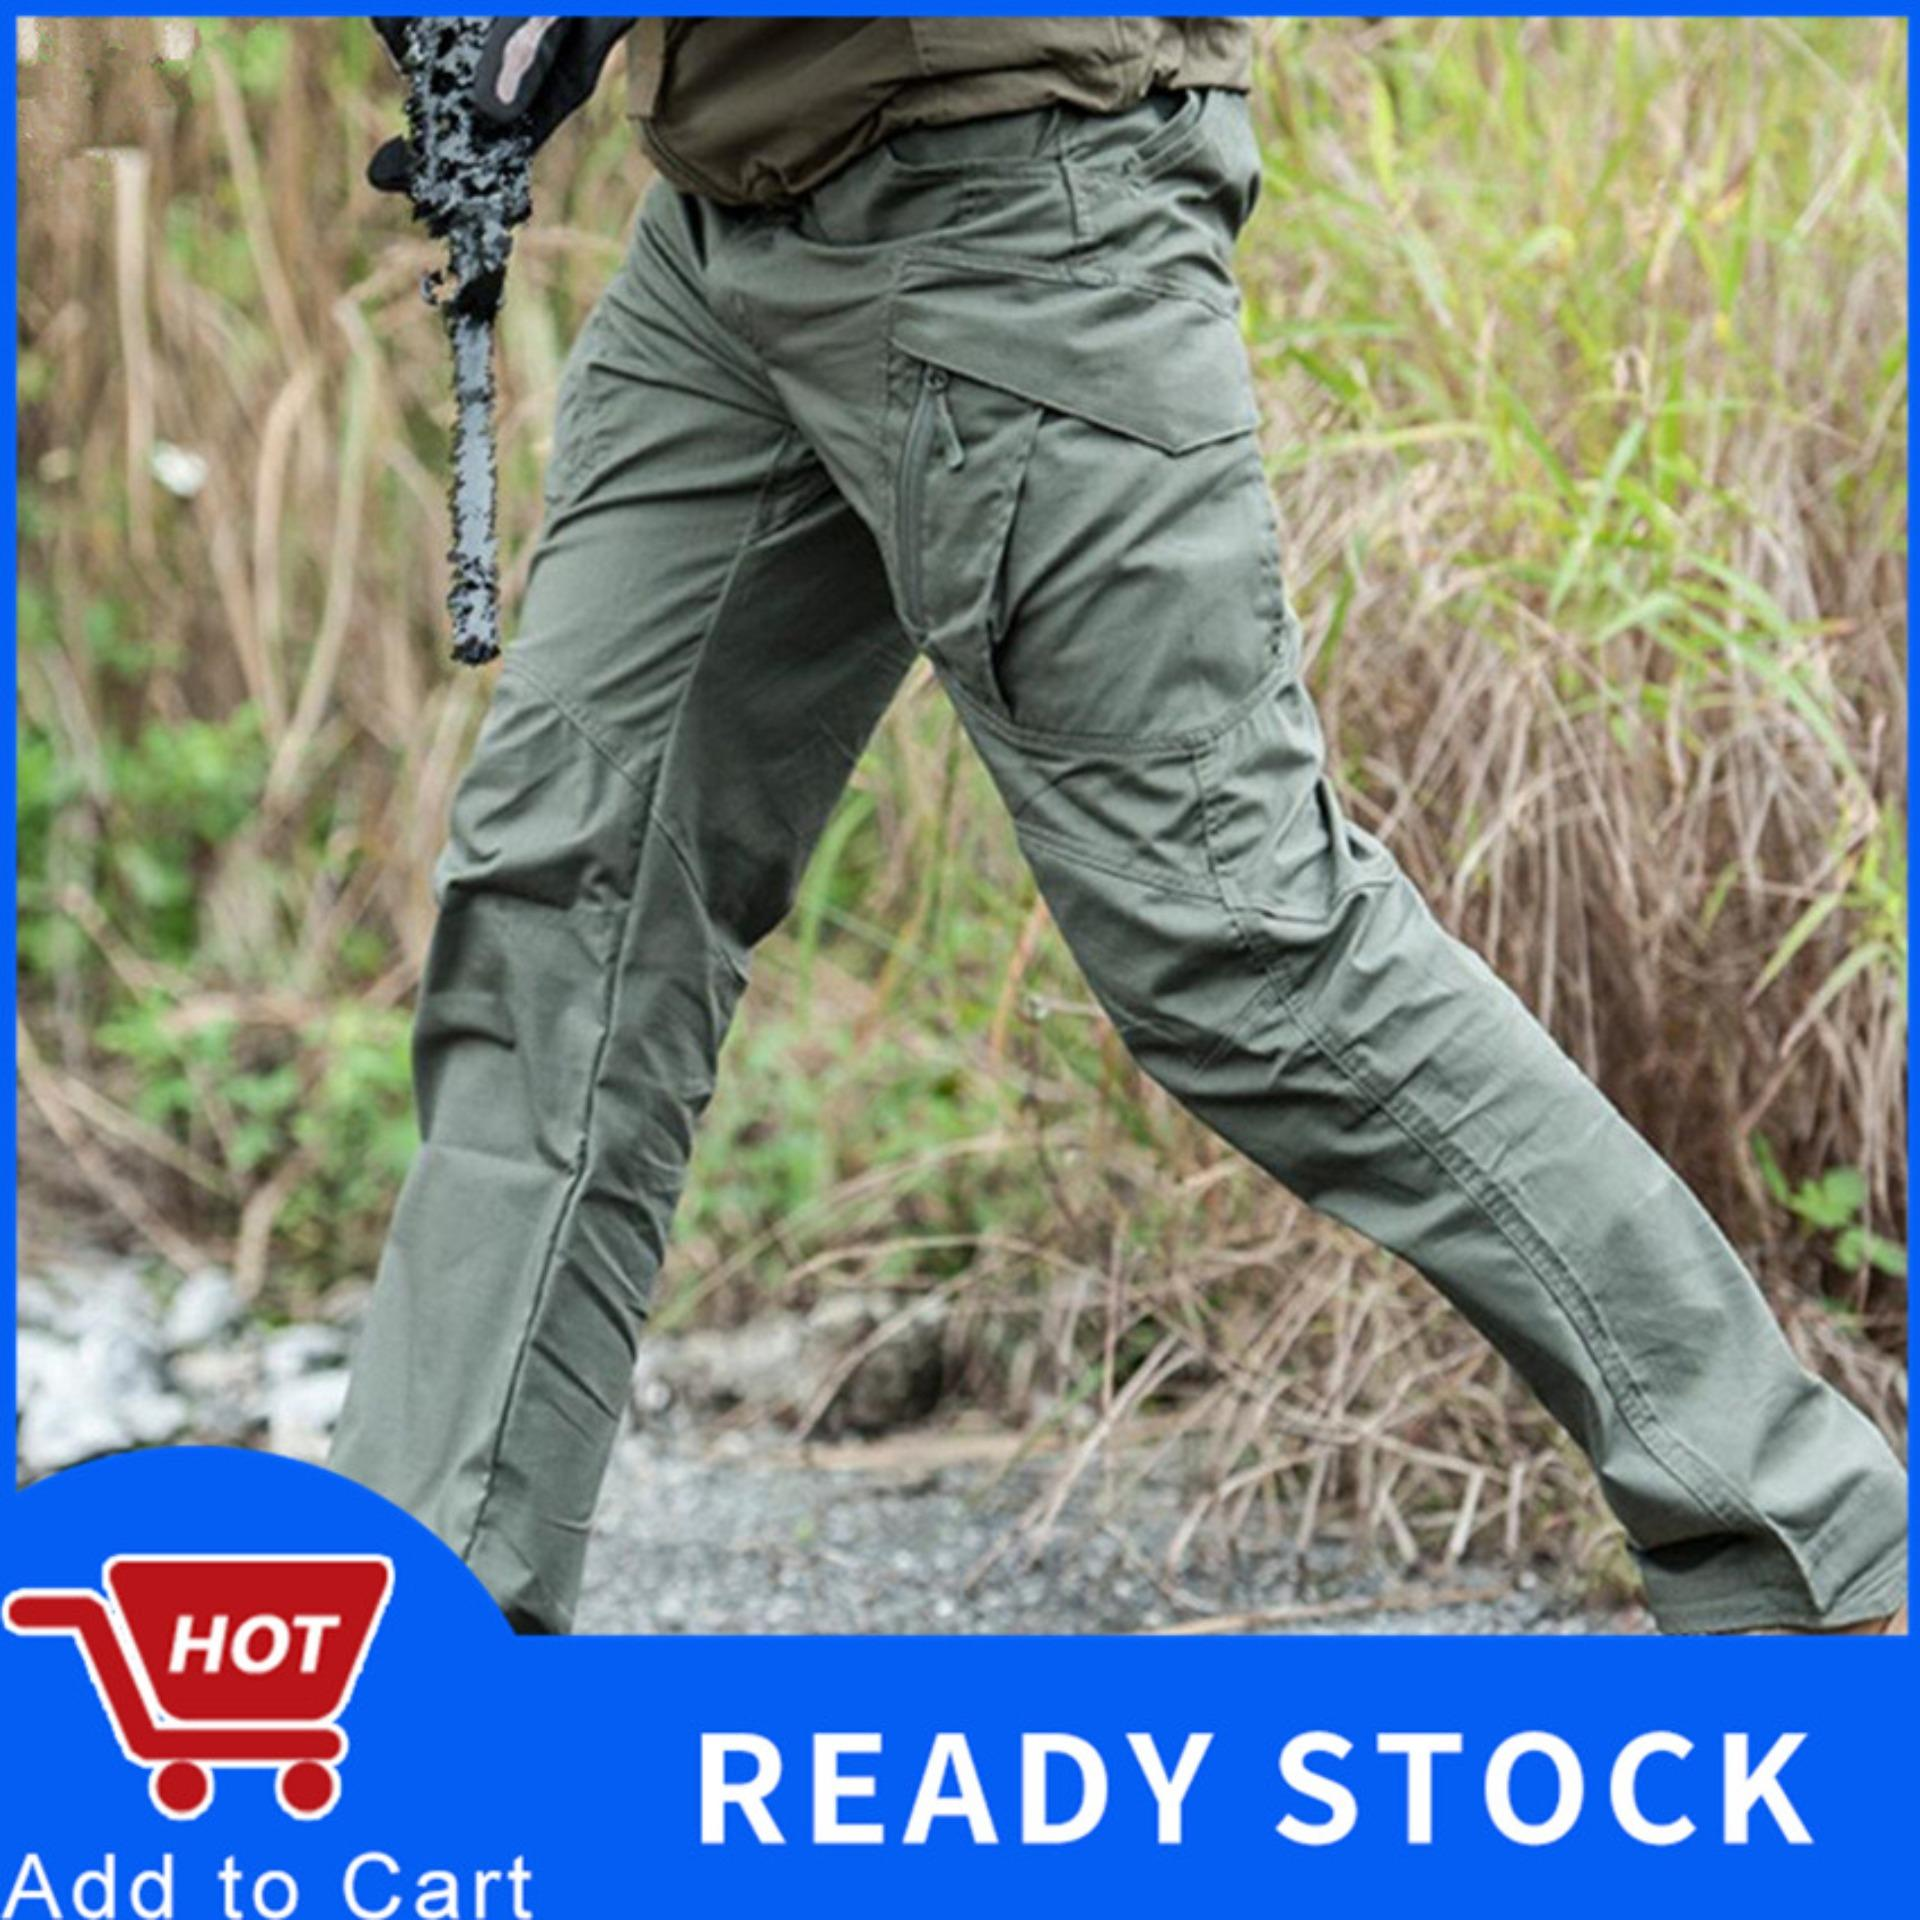 8a1308716294c6 【Hot Sale】 Men's Tactical Warfare Pants Men Cargo Silm Pants Casual Men's  Swat Fighting